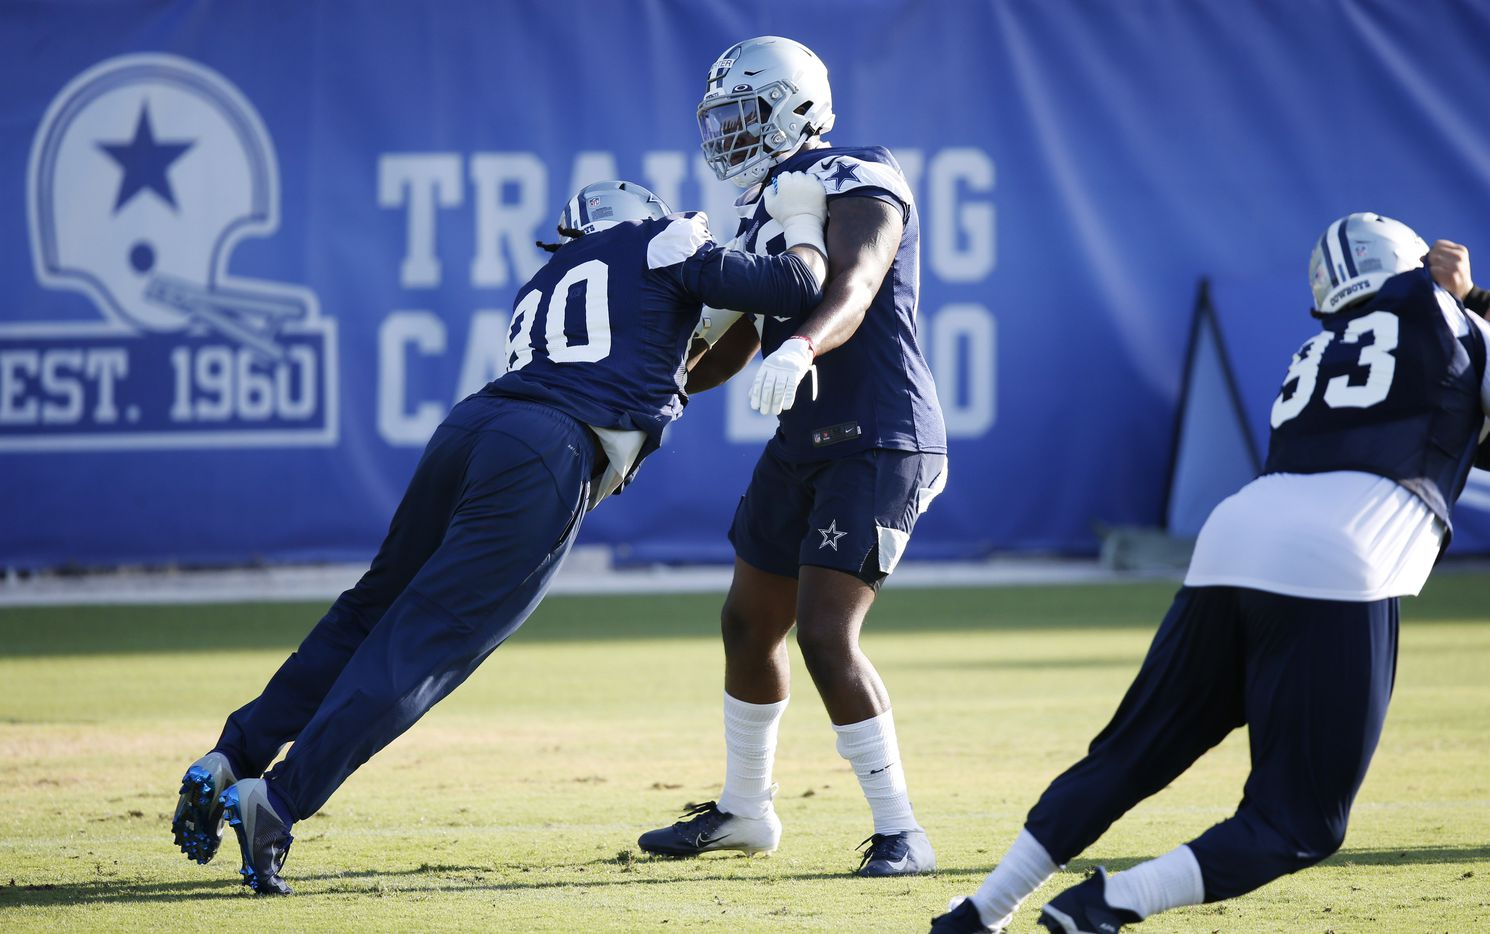 Dallas Cowboys defensive end DeMarcus Lawrence (90) and Dallas Cowboys defensive end Ron'Dell Carter (68) work through a drill during the first day of training camp at Dallas Cowboys headquarters at The Star in Frisco, Texas on Friday, August 14, 2020.